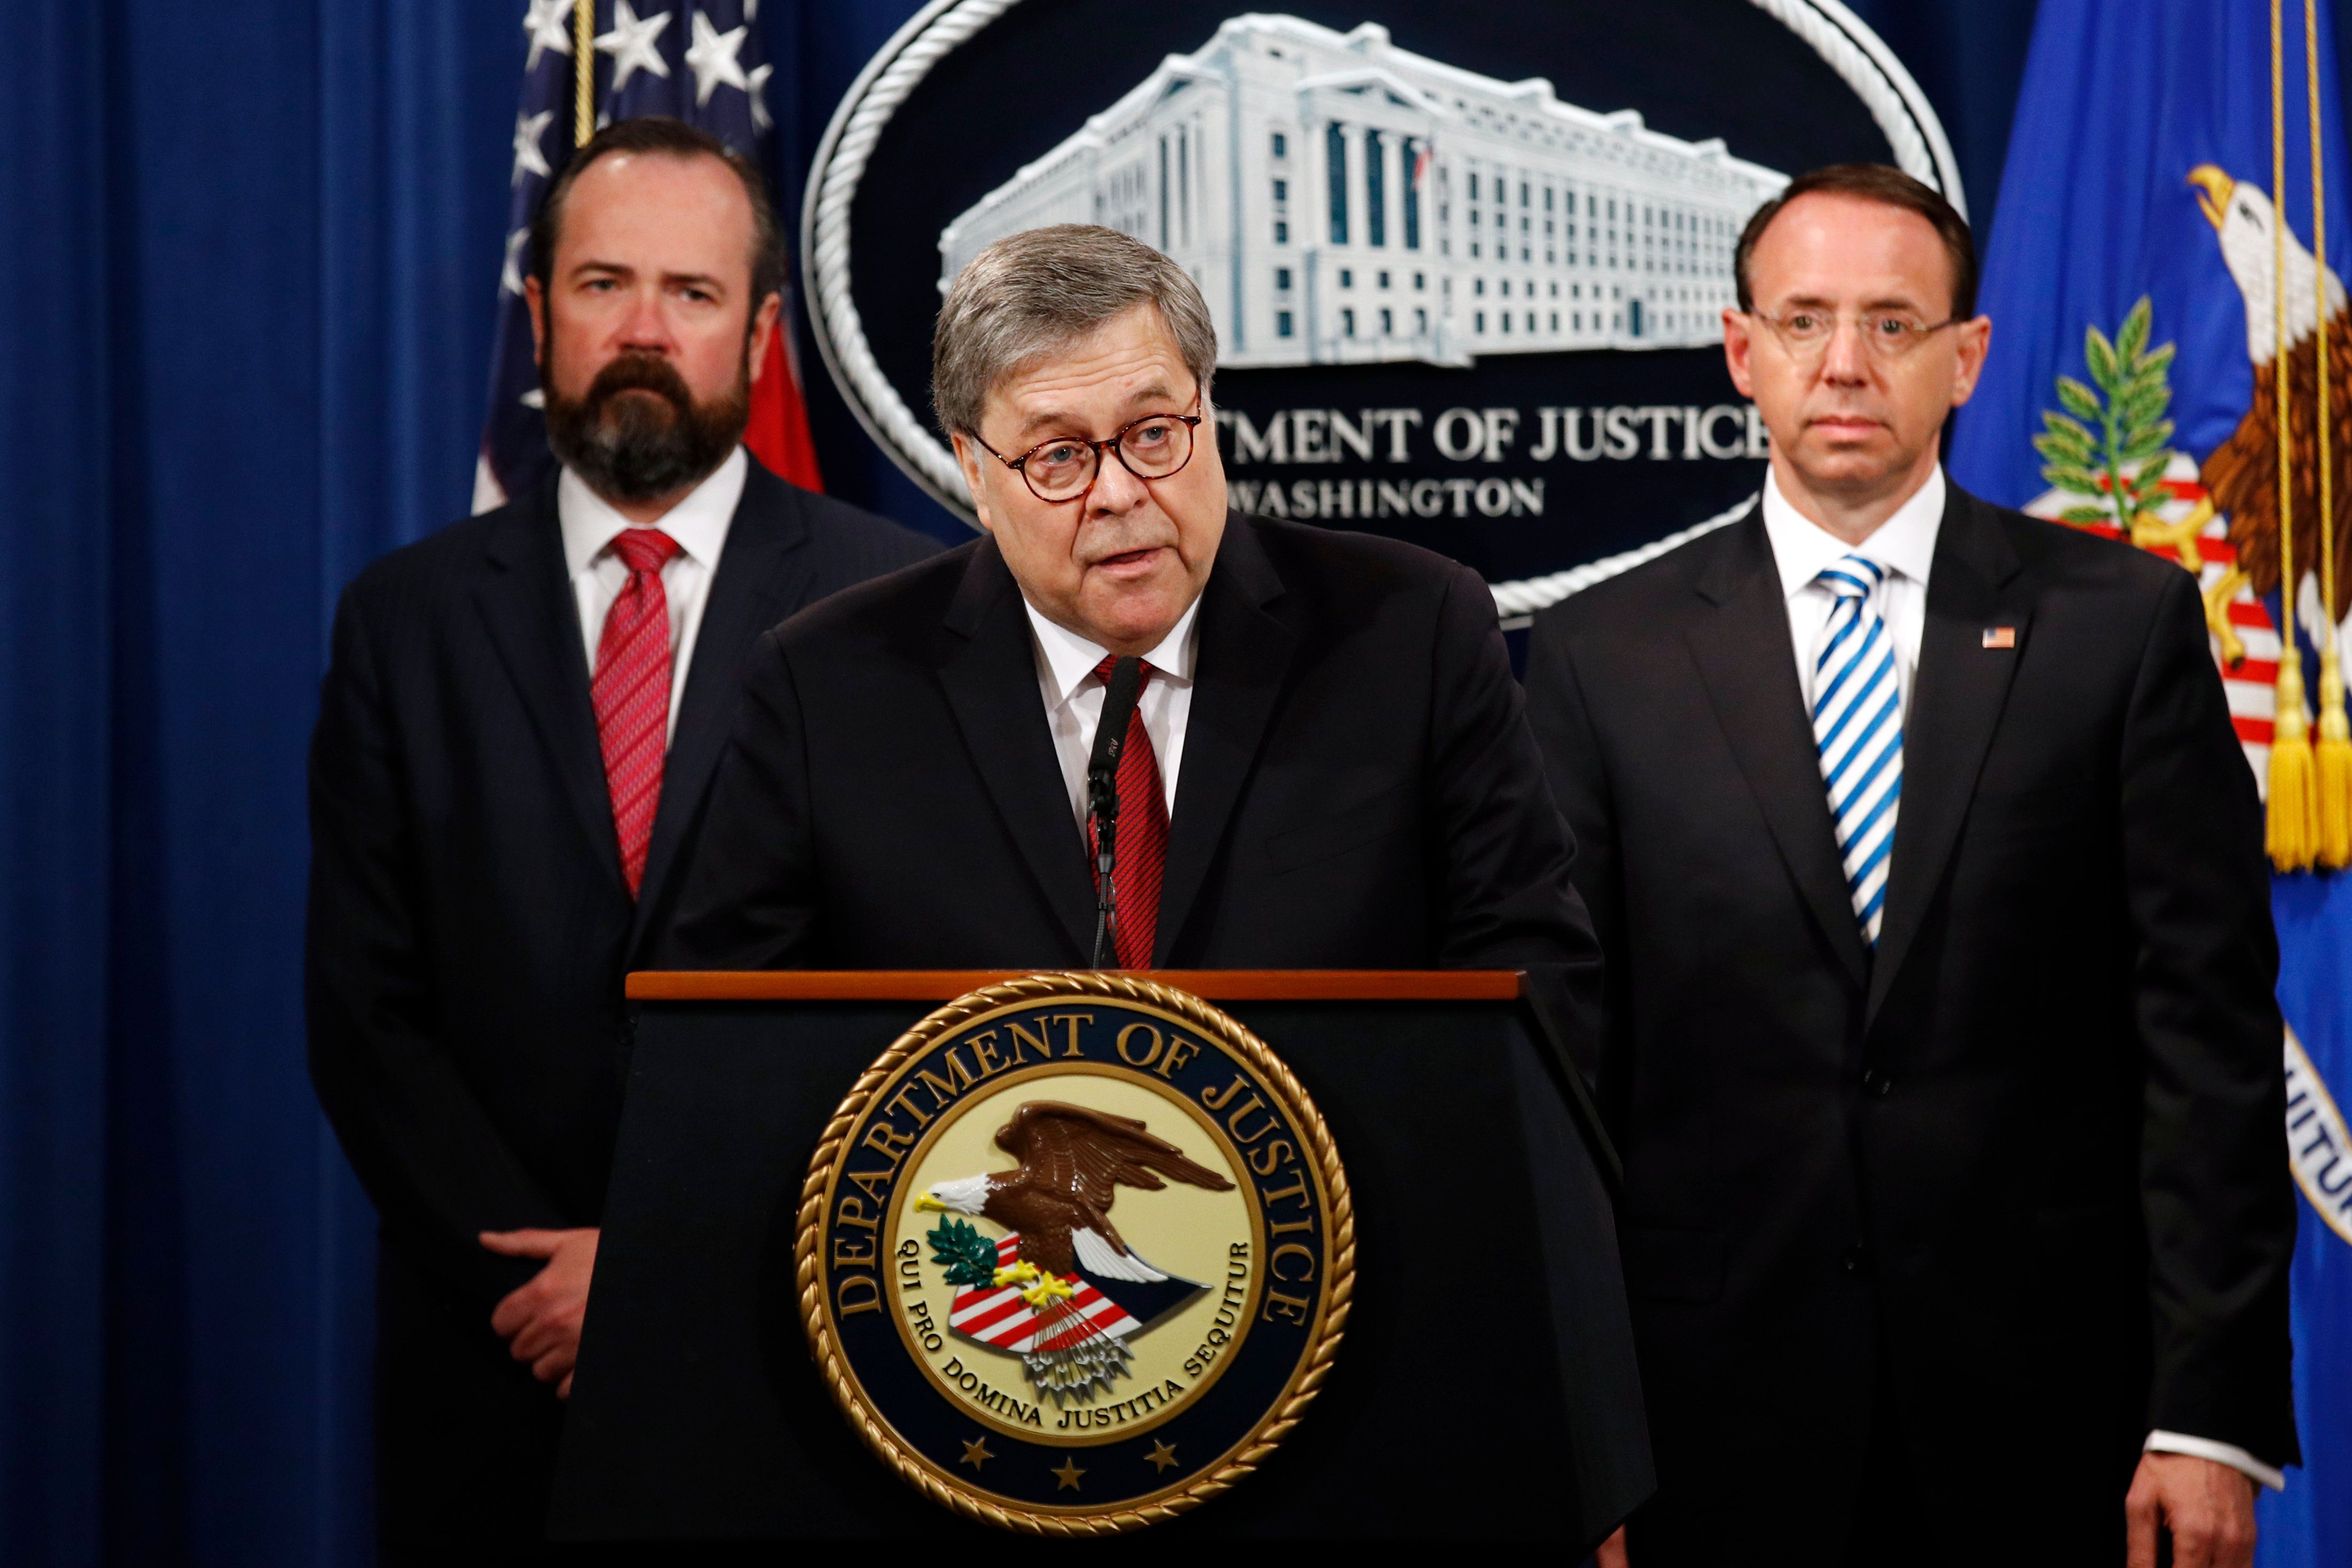 Attorney General William Barr speaks alongside Deputy Attorney General Rod Rosenstein, right, and Deputy Attorney General Ed O'Callaghan, left, about the release of a redacted version of special counsel Robert Mueller's report during a news conference, Thursday, April 18, 2019, at the Department of Justice in Washington. (AP Photo/Patrick Semansky)